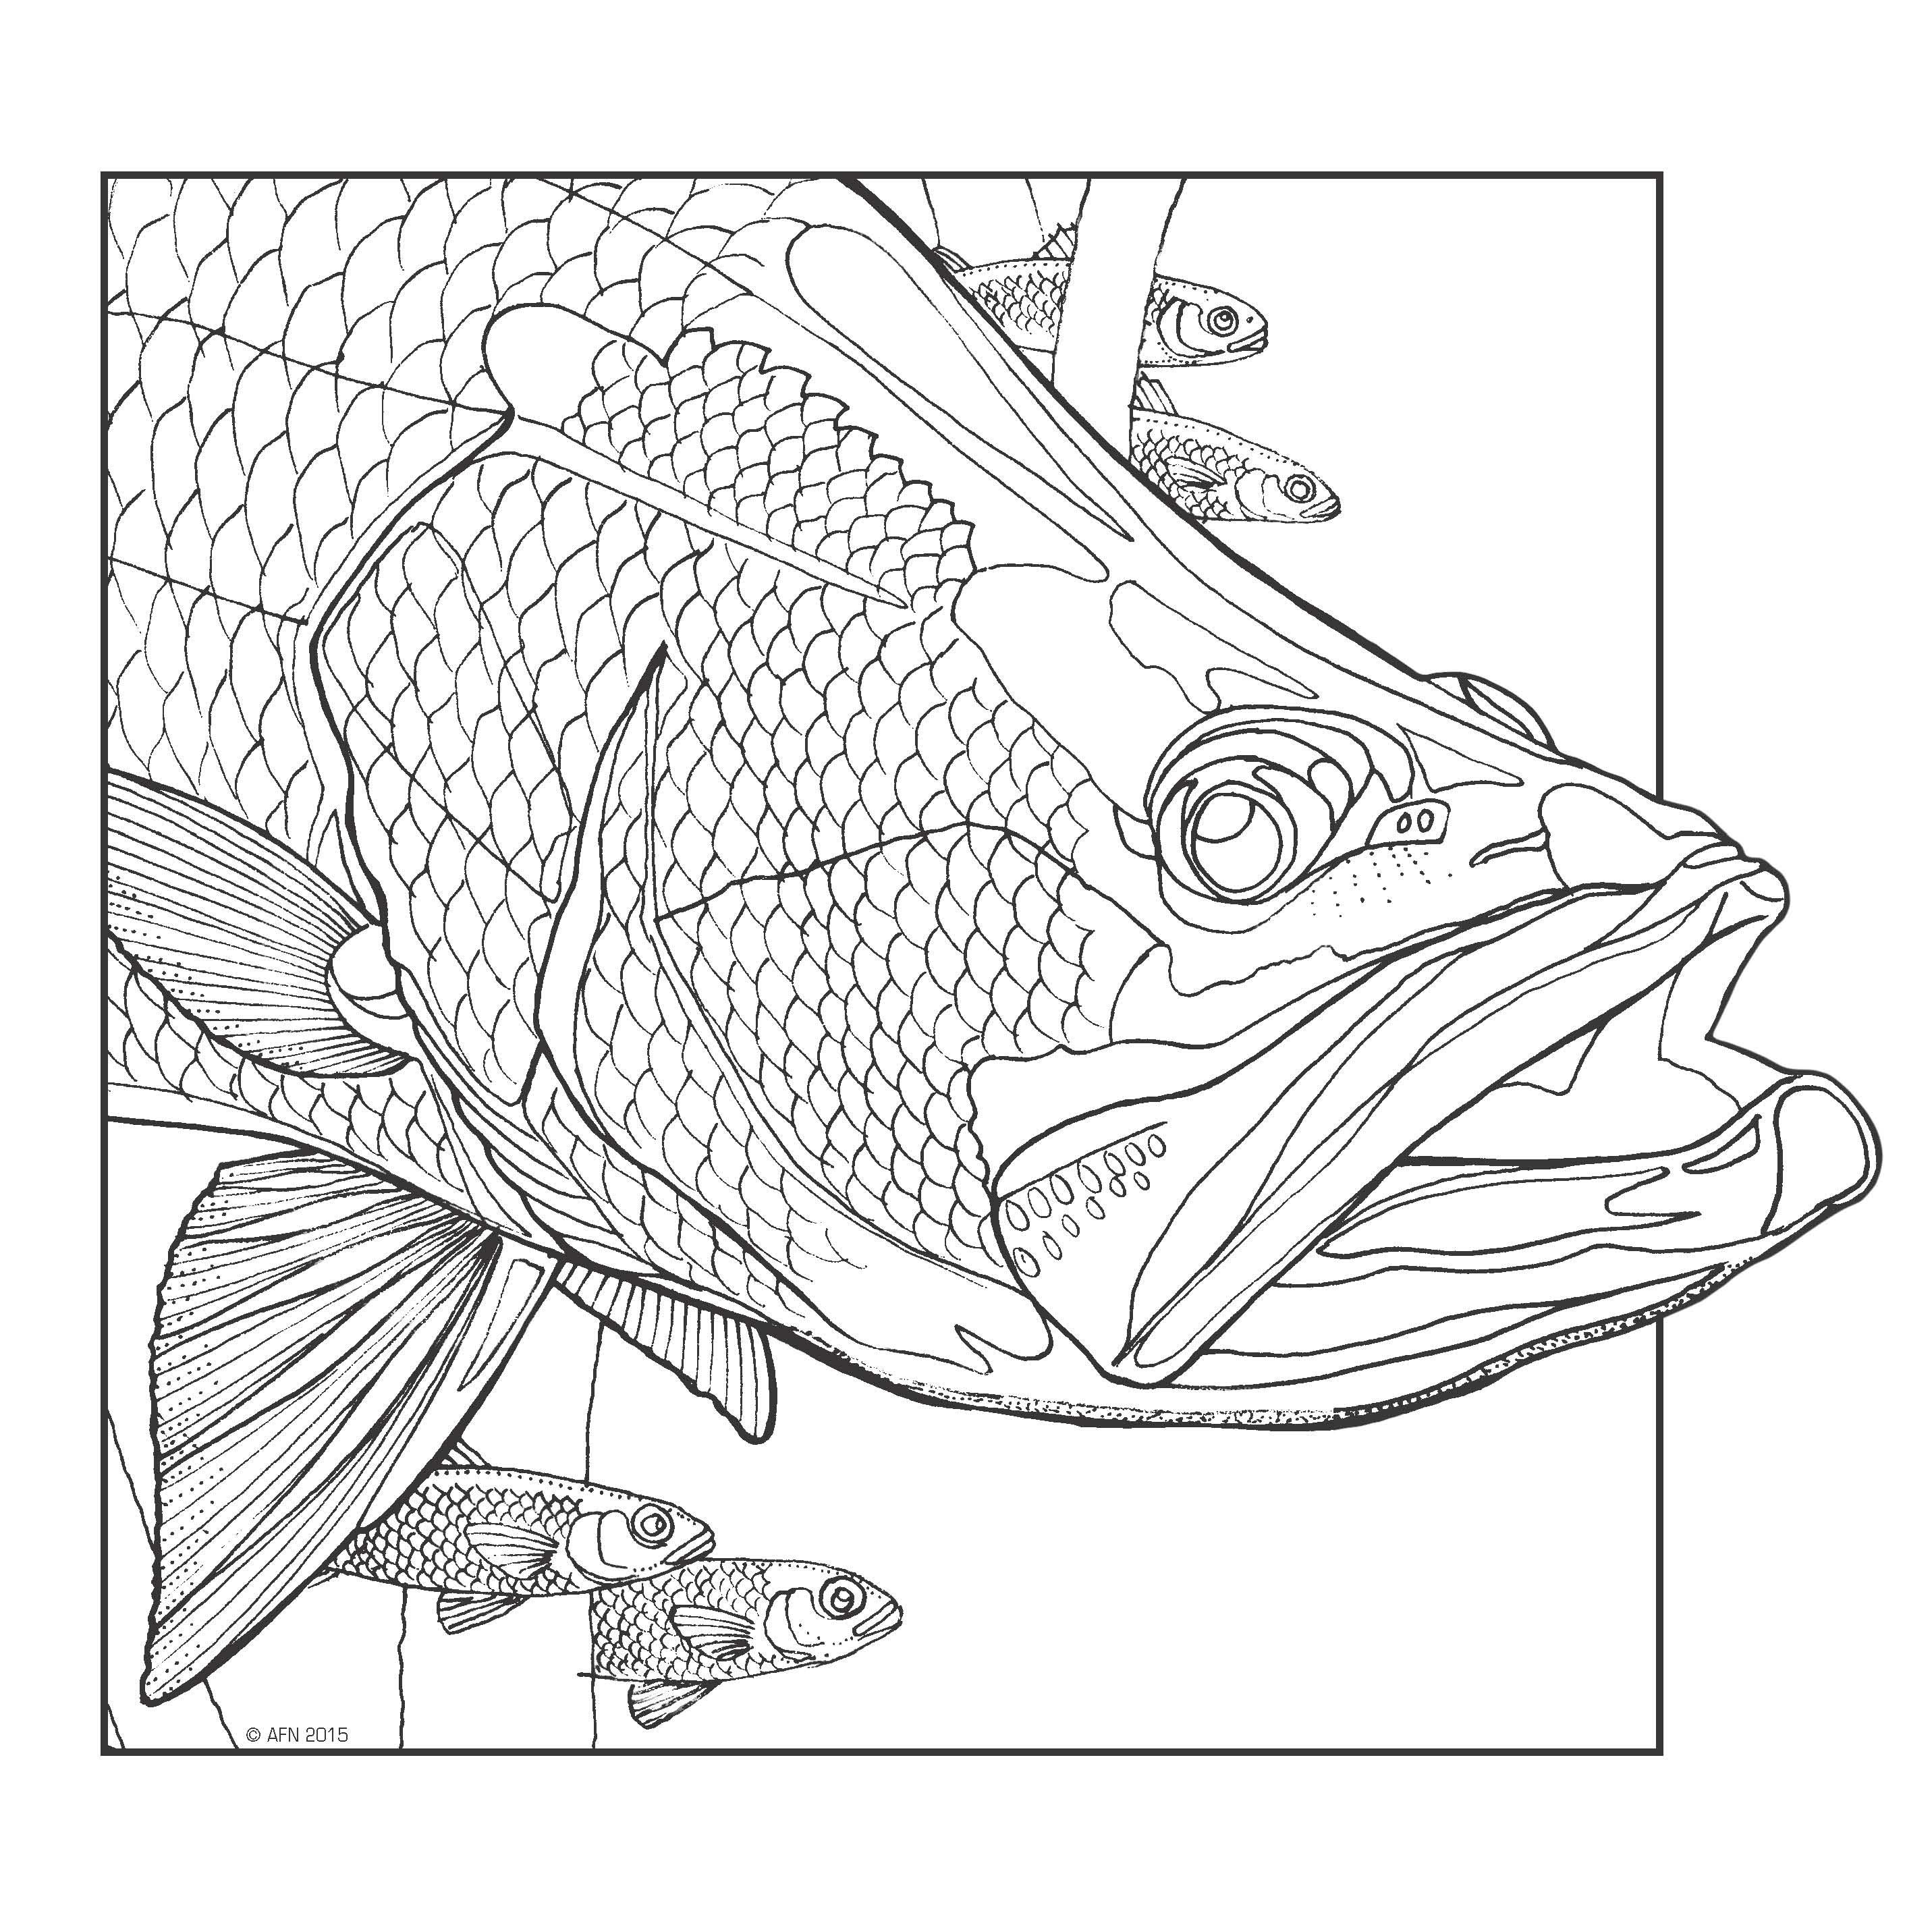 complexions of the aquatic adult colouring book 2 - Adult Coloring Books 2